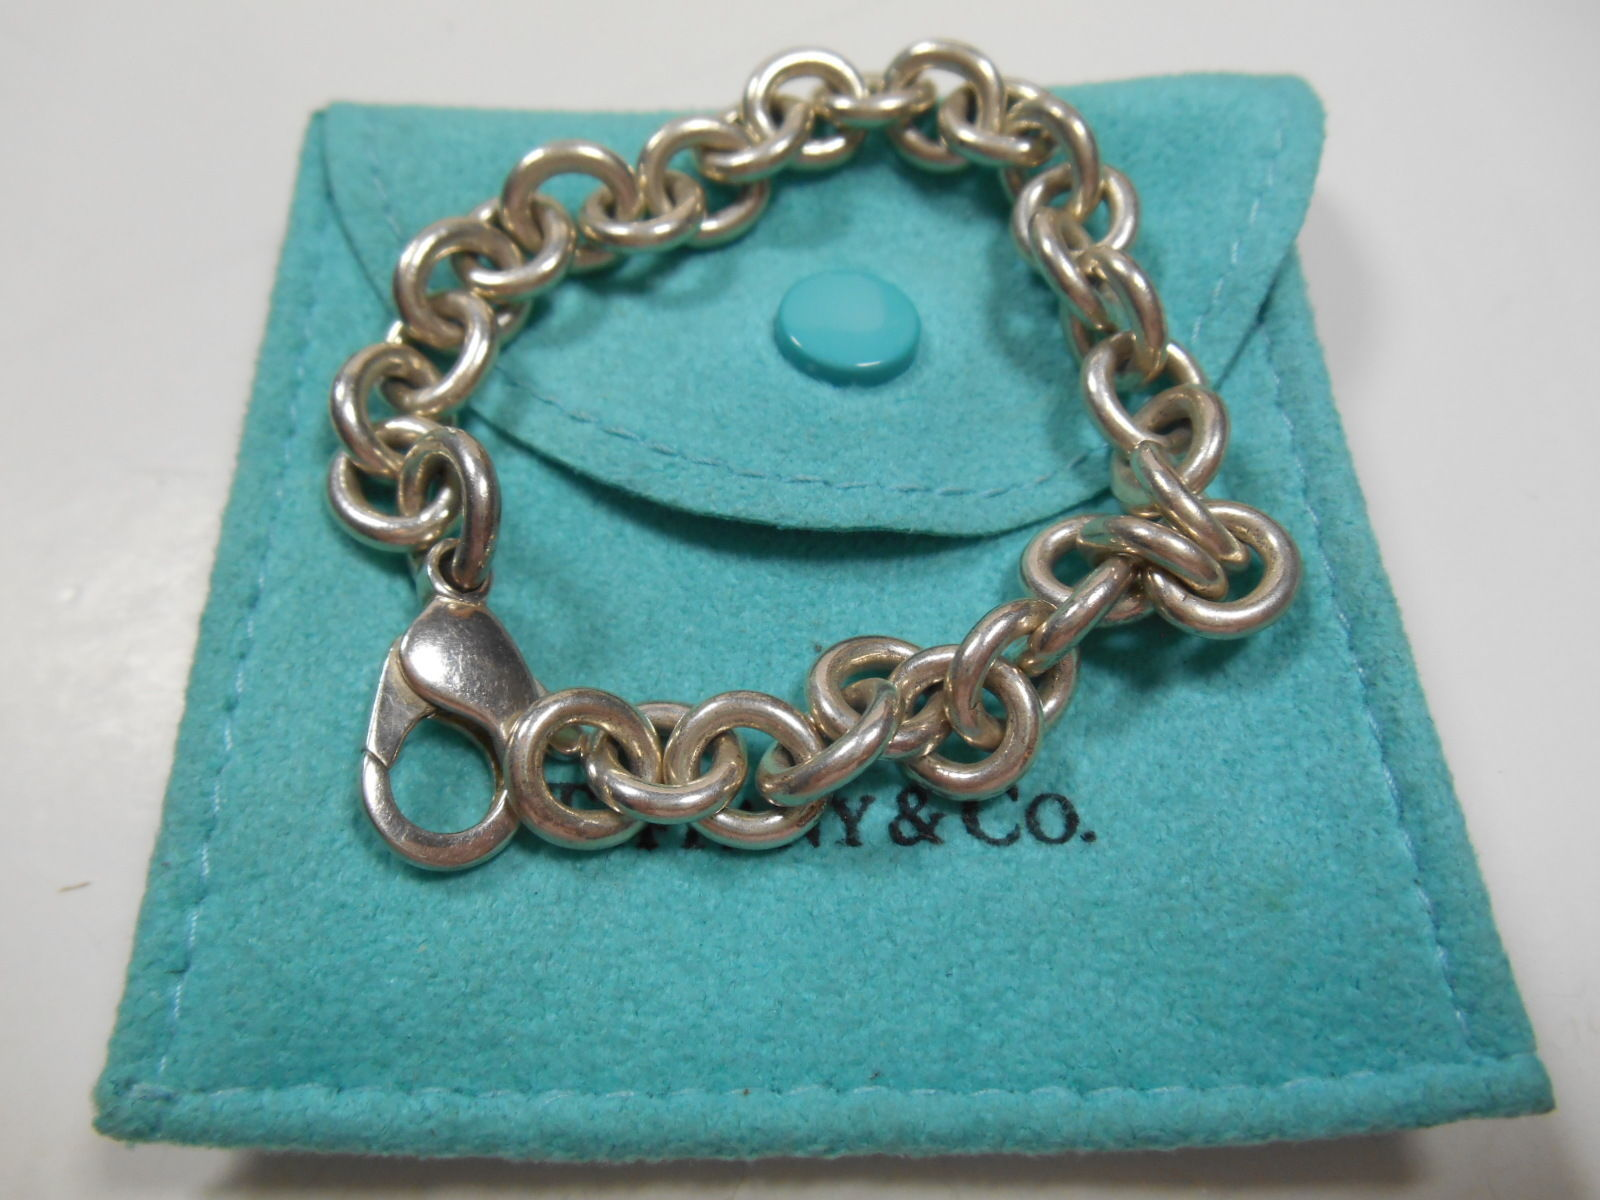 5a79662ac93a2 Tiffany & Co. Round Link Charm Bracelet and 32 similar items